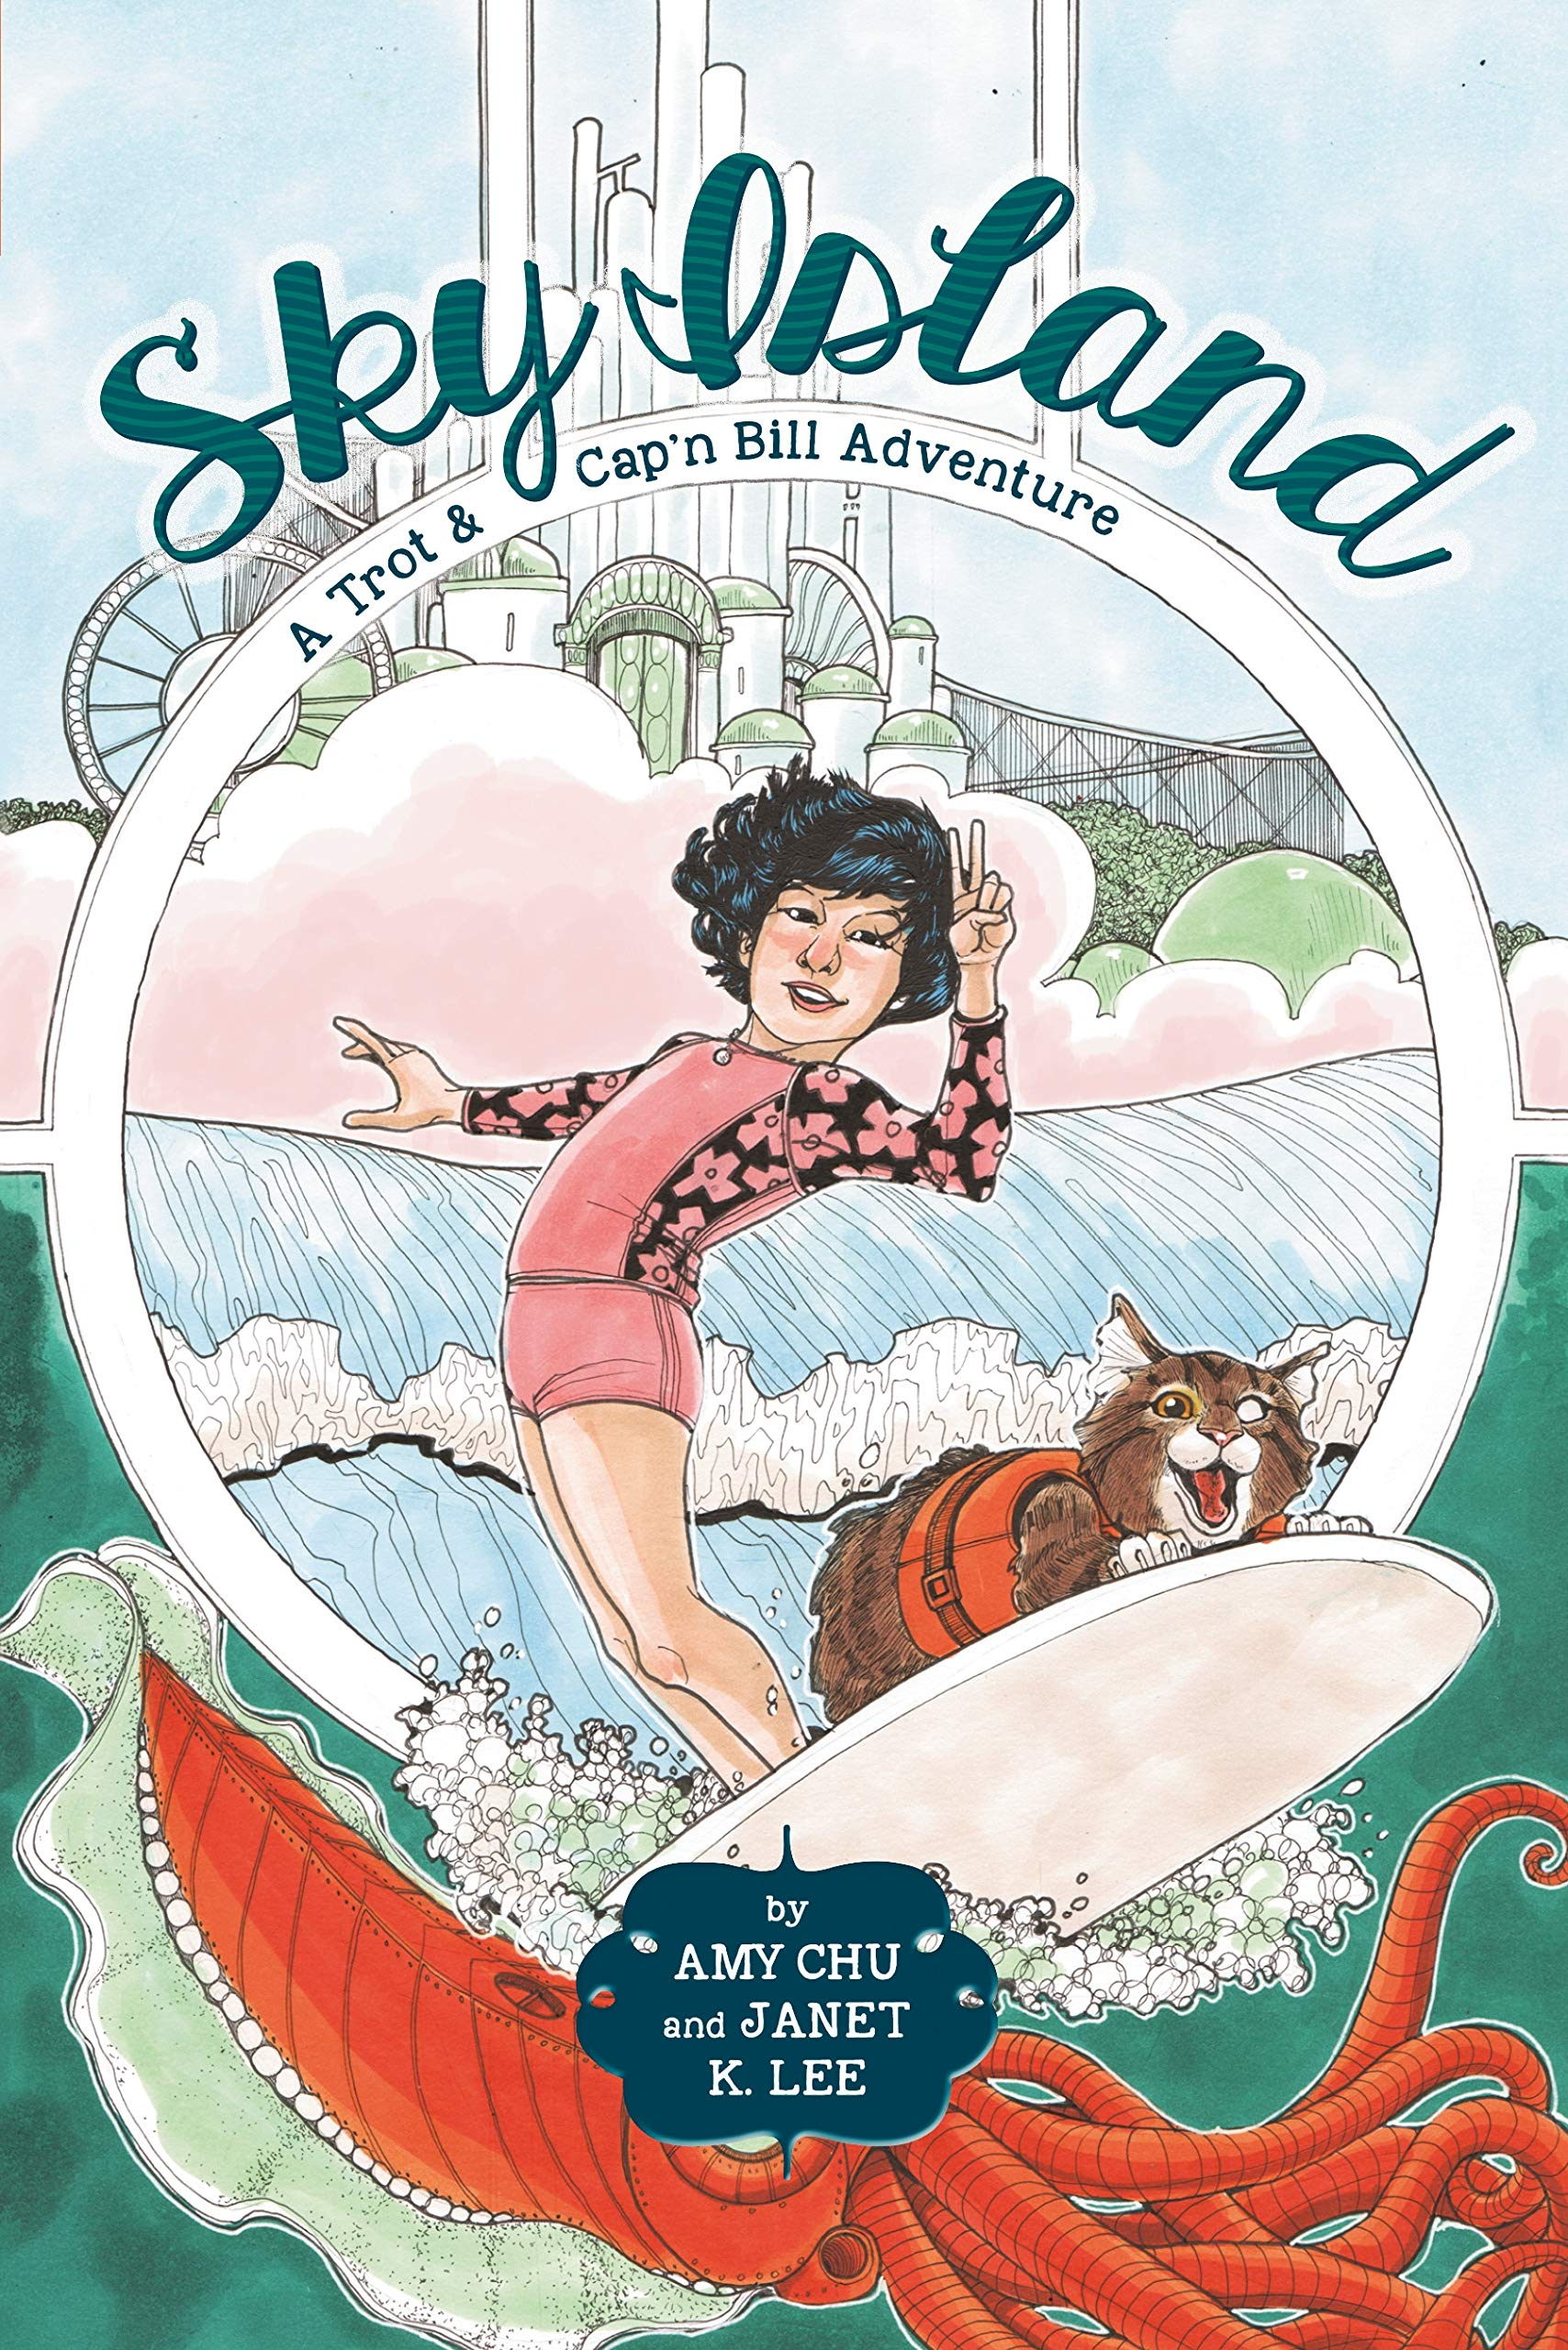 Viking Books for Young Readers (June 9, 2020)